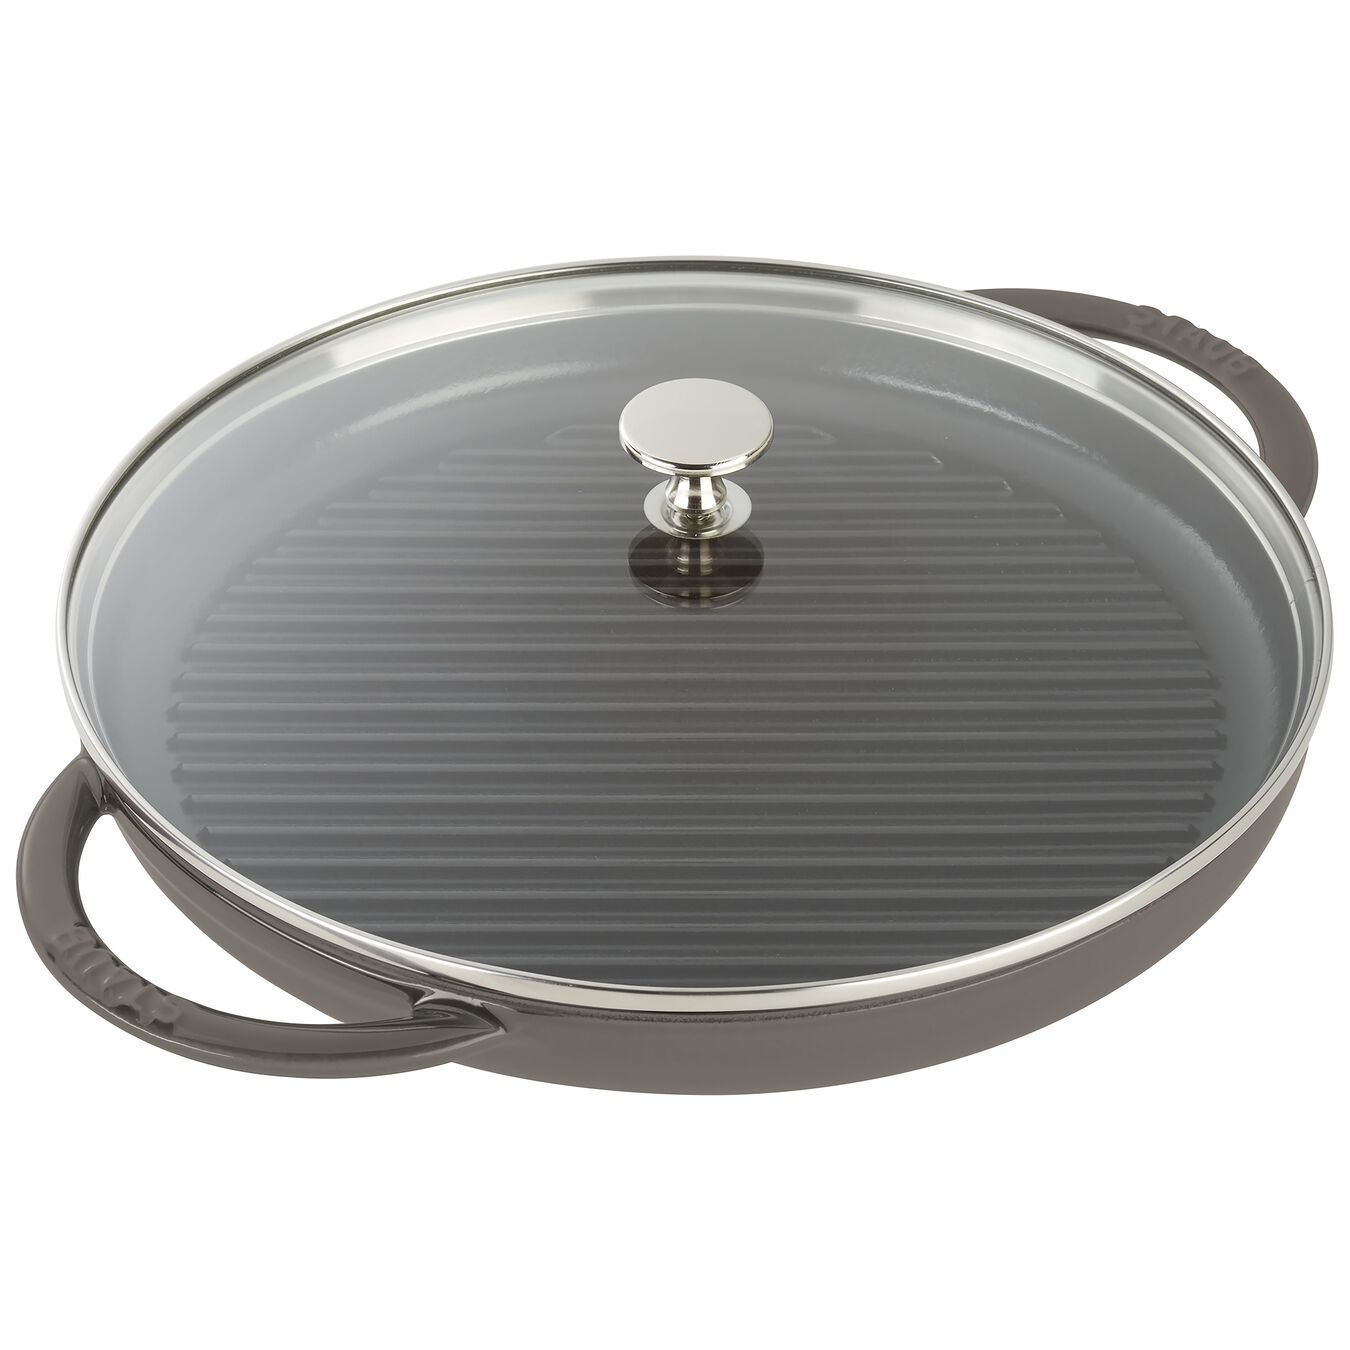 10-inch Round Steam Grill - Grpahite Grey,,large 1